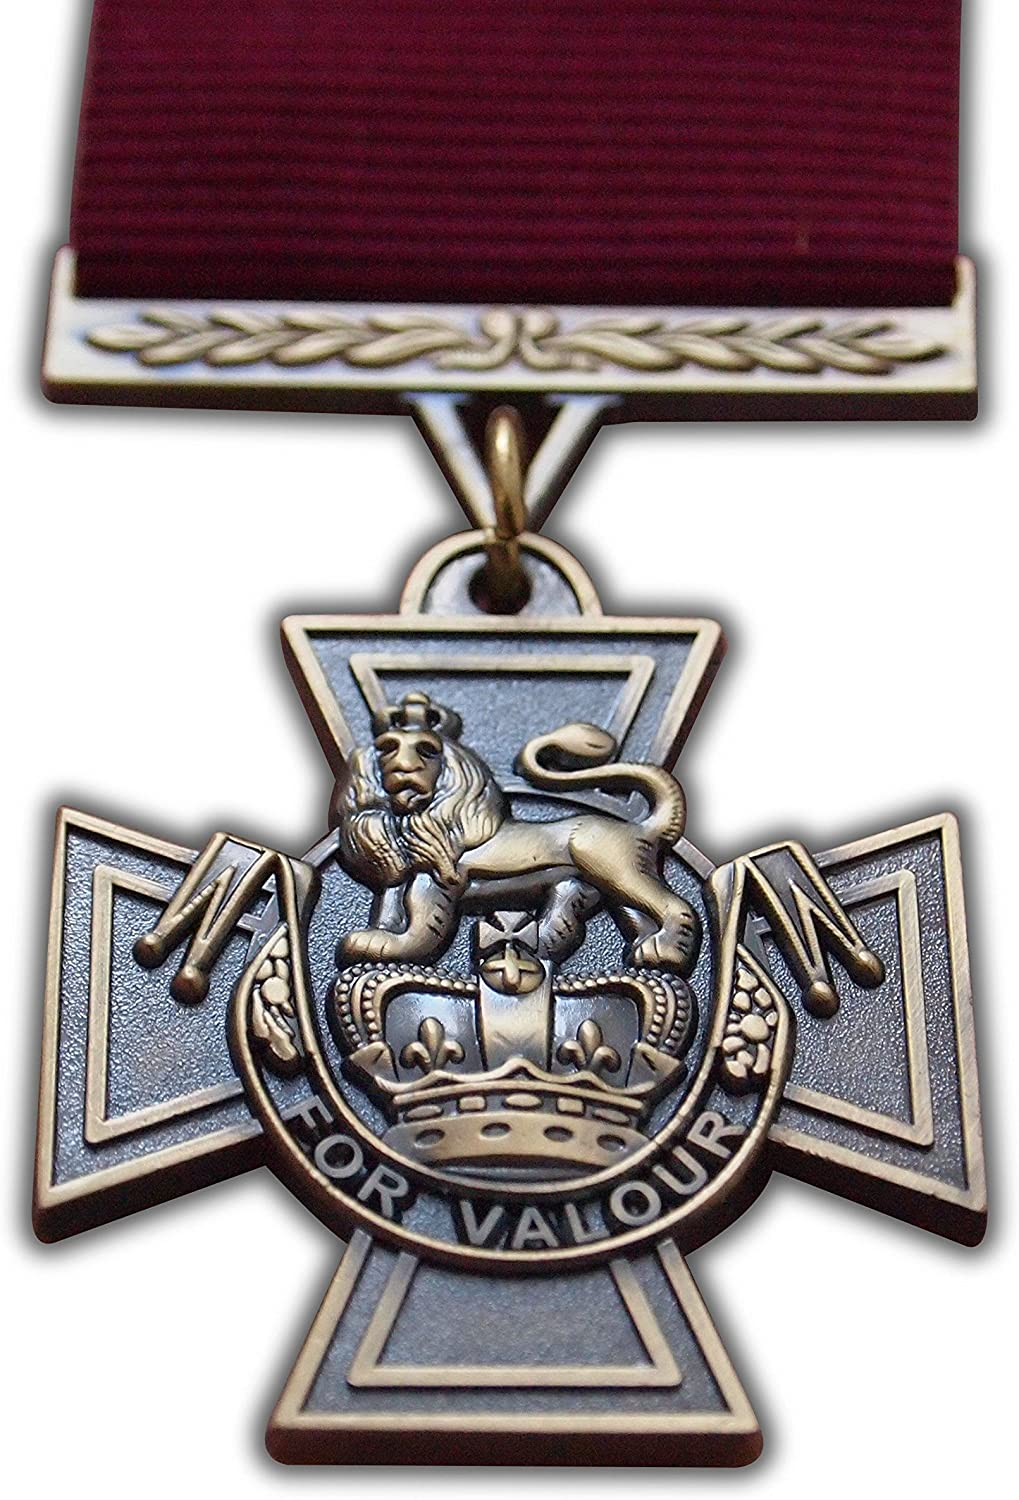 Victoria Cross Full Size Reproduction Medal For Valour